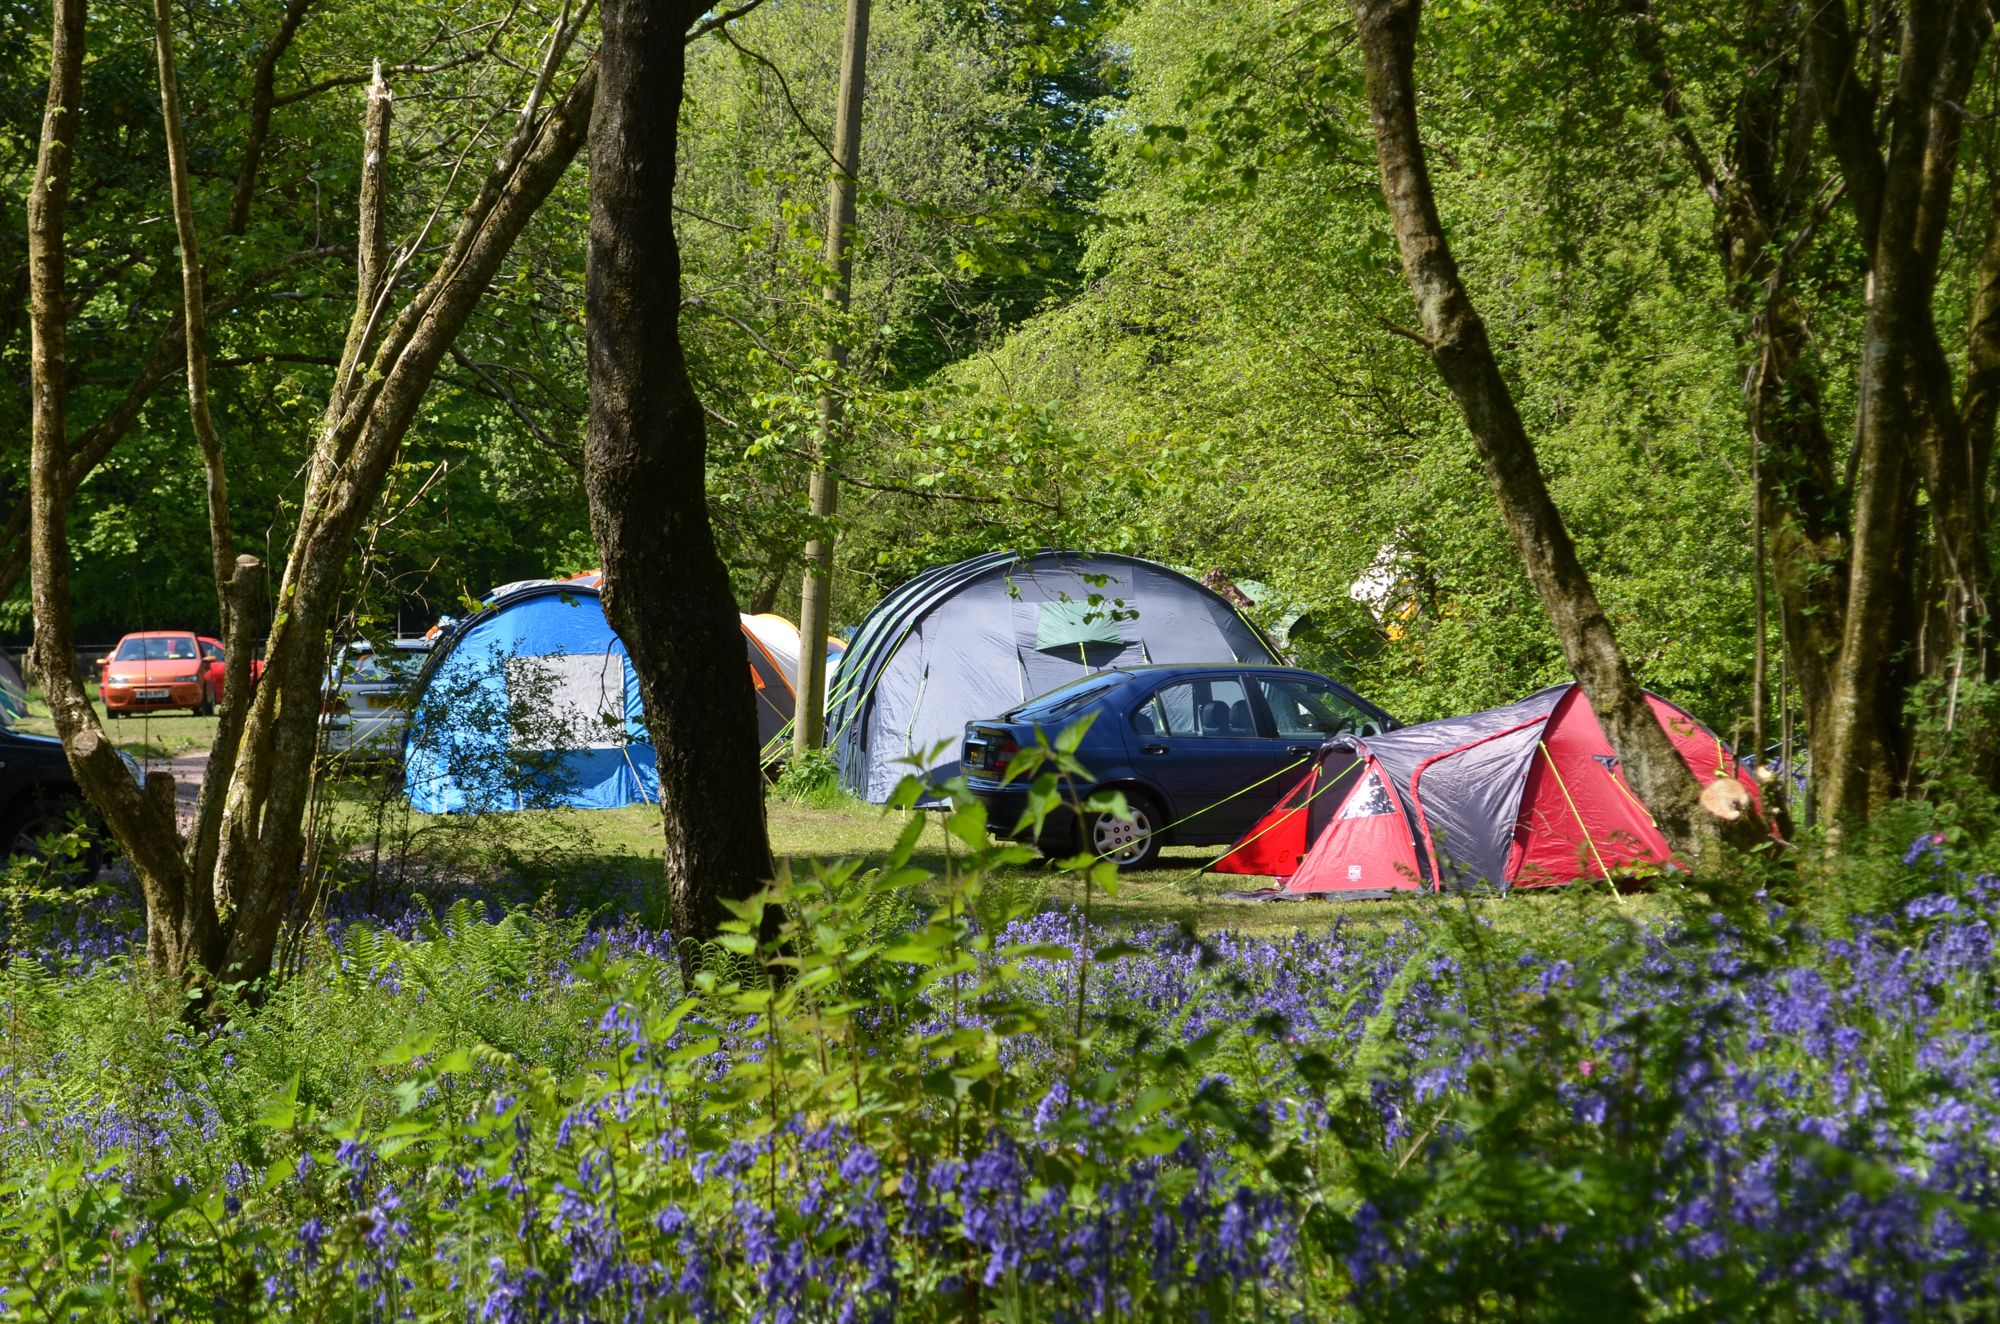 Glamping in Cabin holidays at Cool Camping